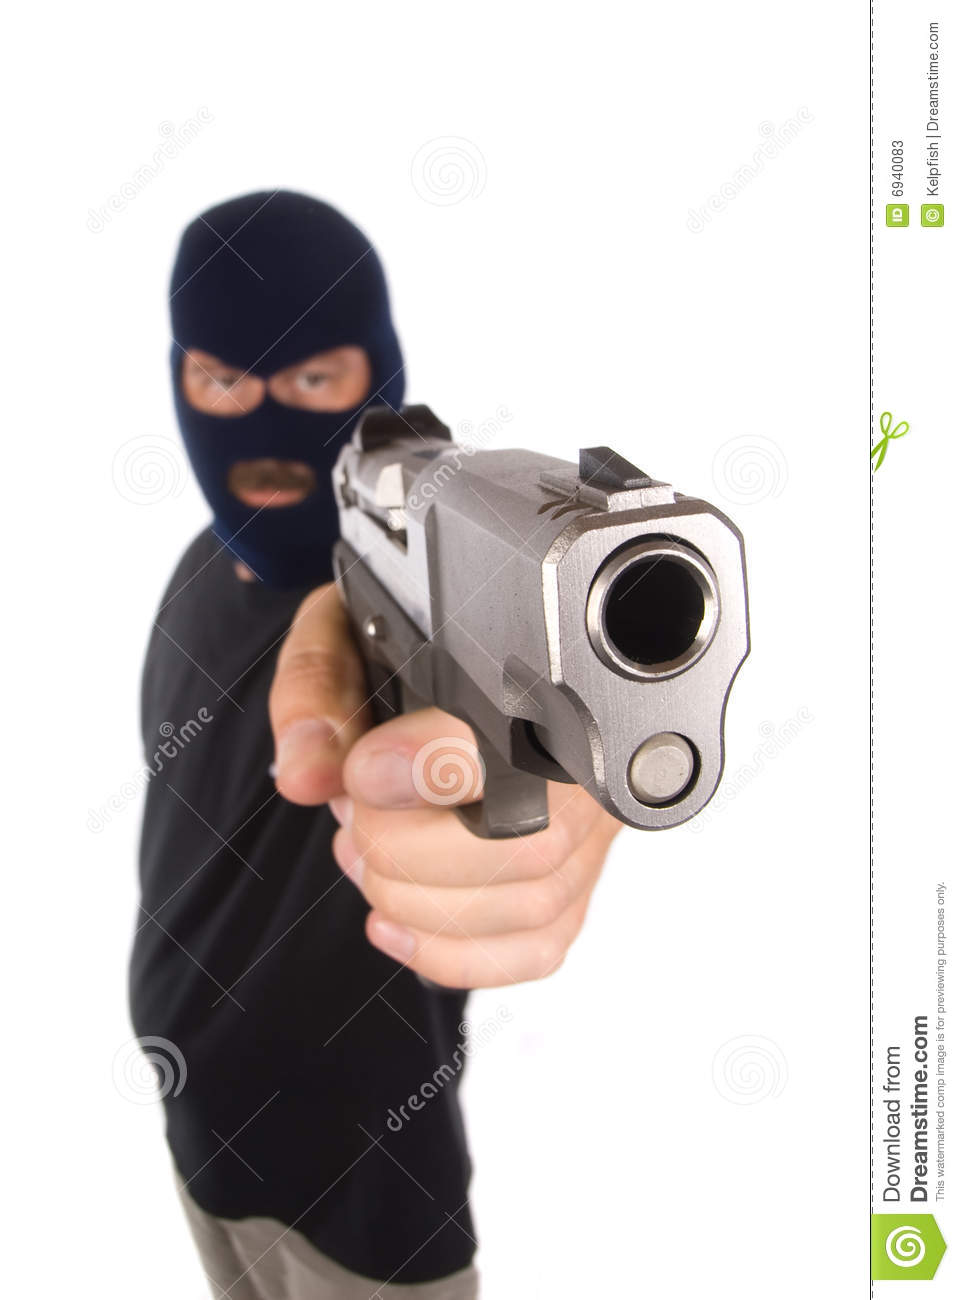 robber with hidden face points his gun in a robbery attempt.